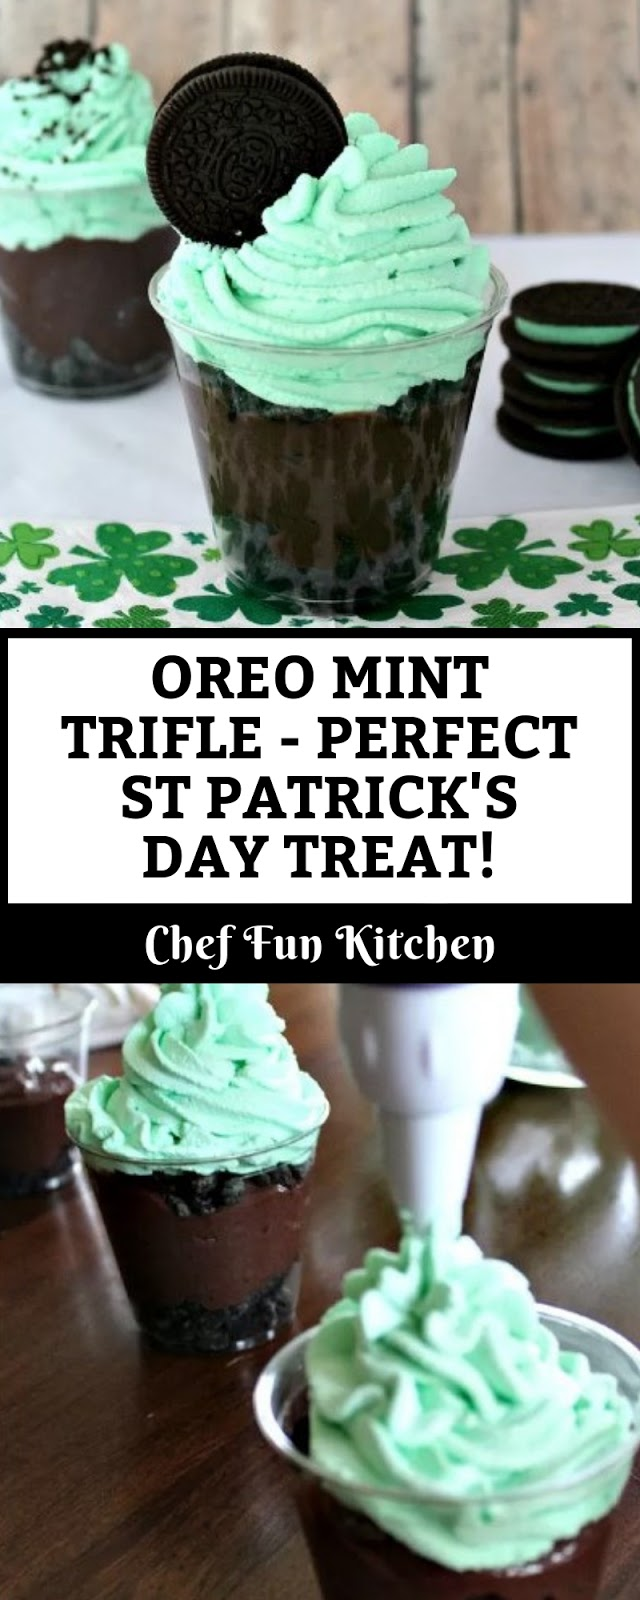 OREO MINT TRIFLE - PERFECT ST PATRICK'S DAY TREAT!